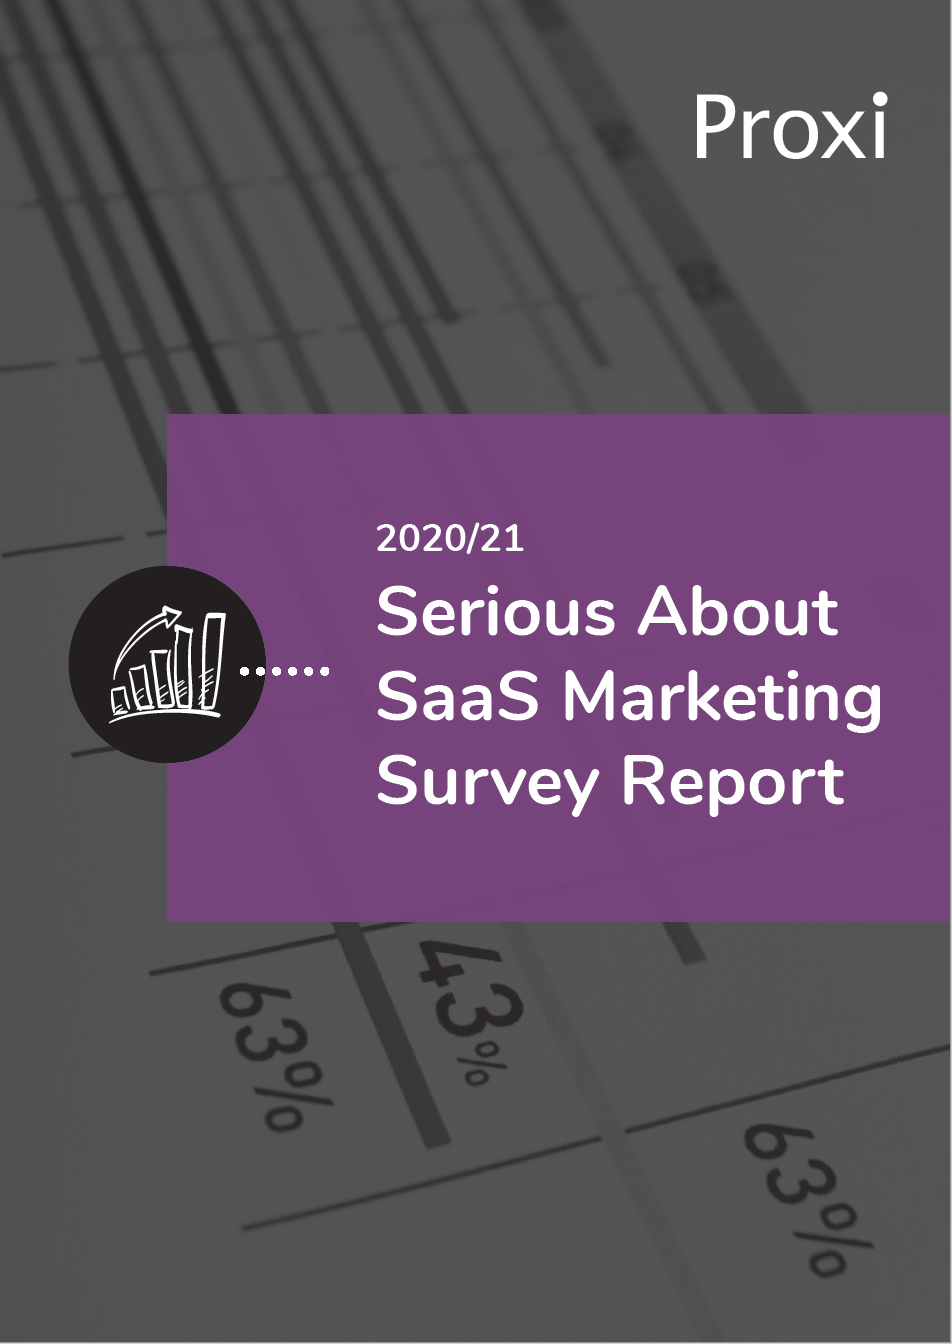 Serious About SaaS marketing Survey Report